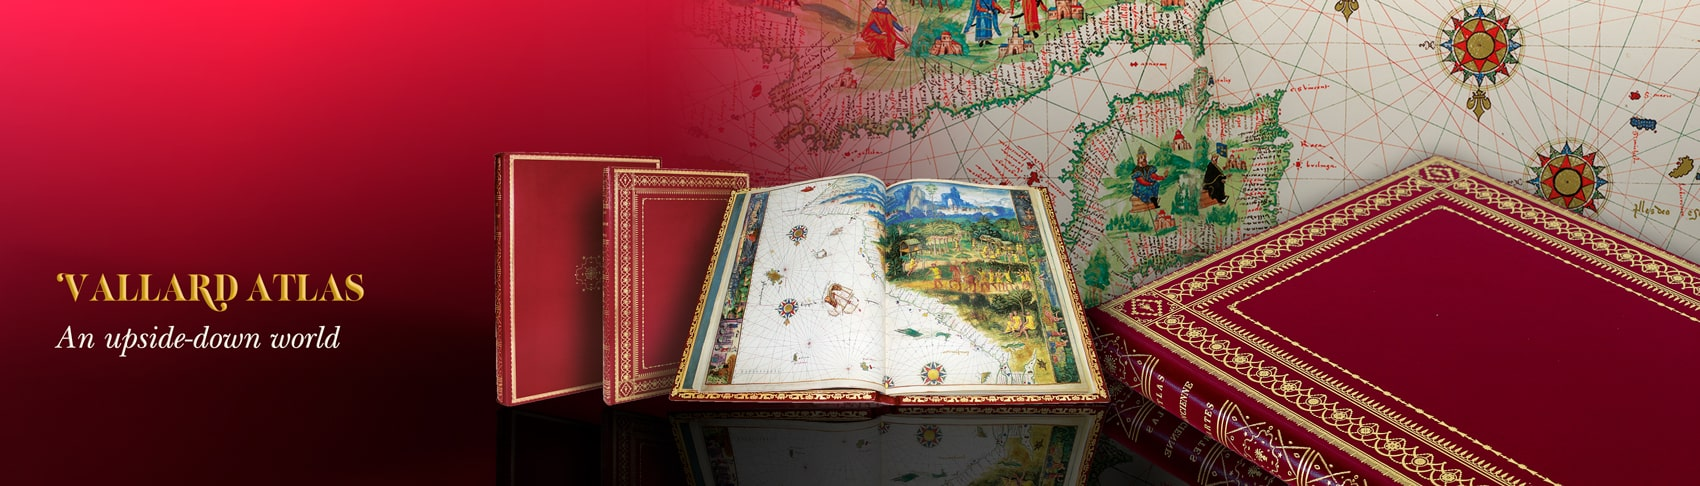 Vallard Atlas is one of the most beautiful Atlases of the Renaissance and the Age of Discovery.